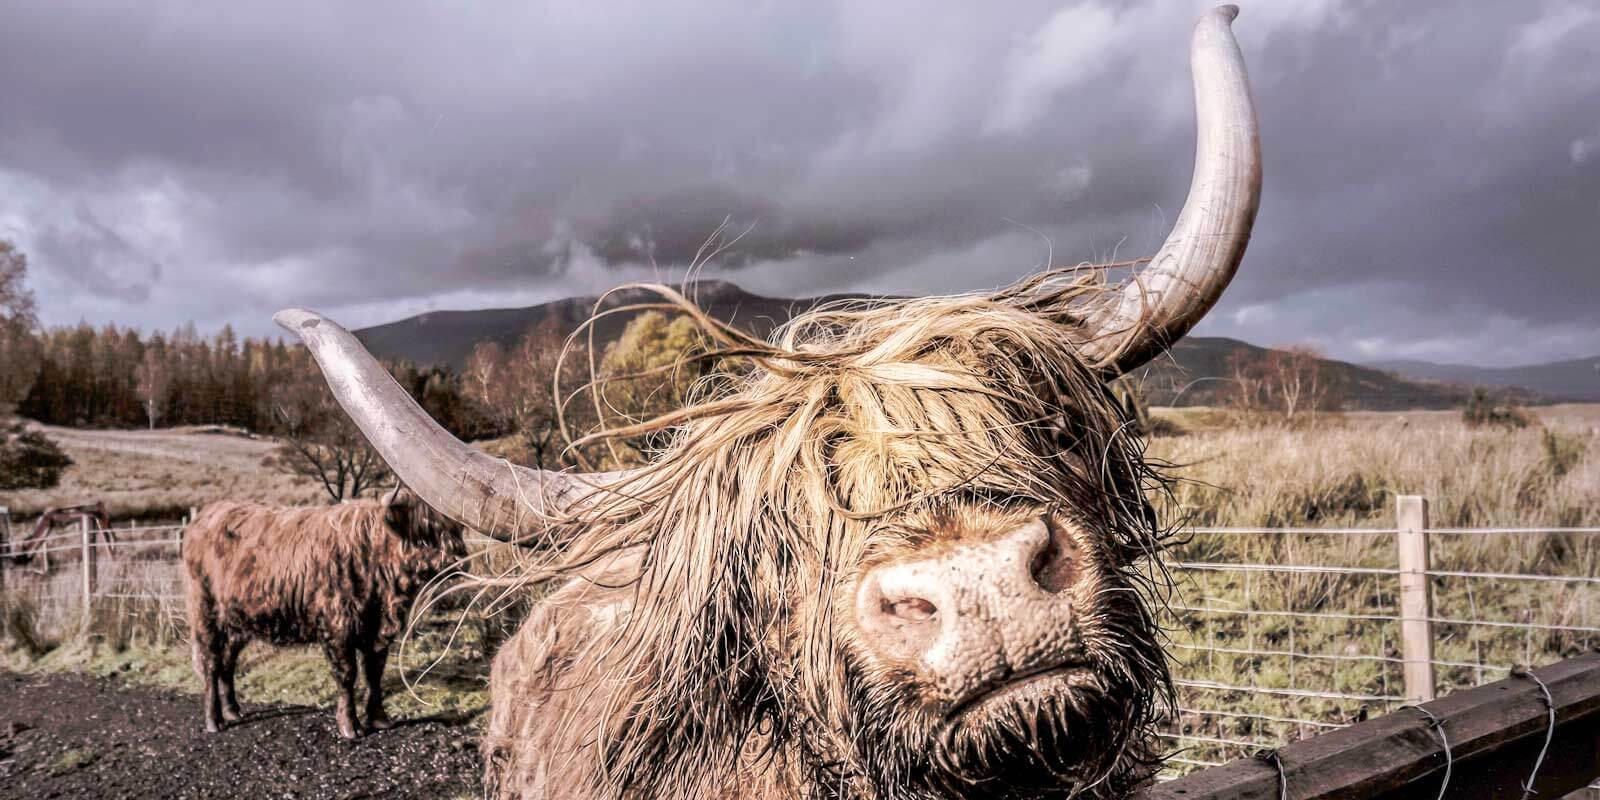 Closeup of a Scottish Highland cattle with long hair and big horns.